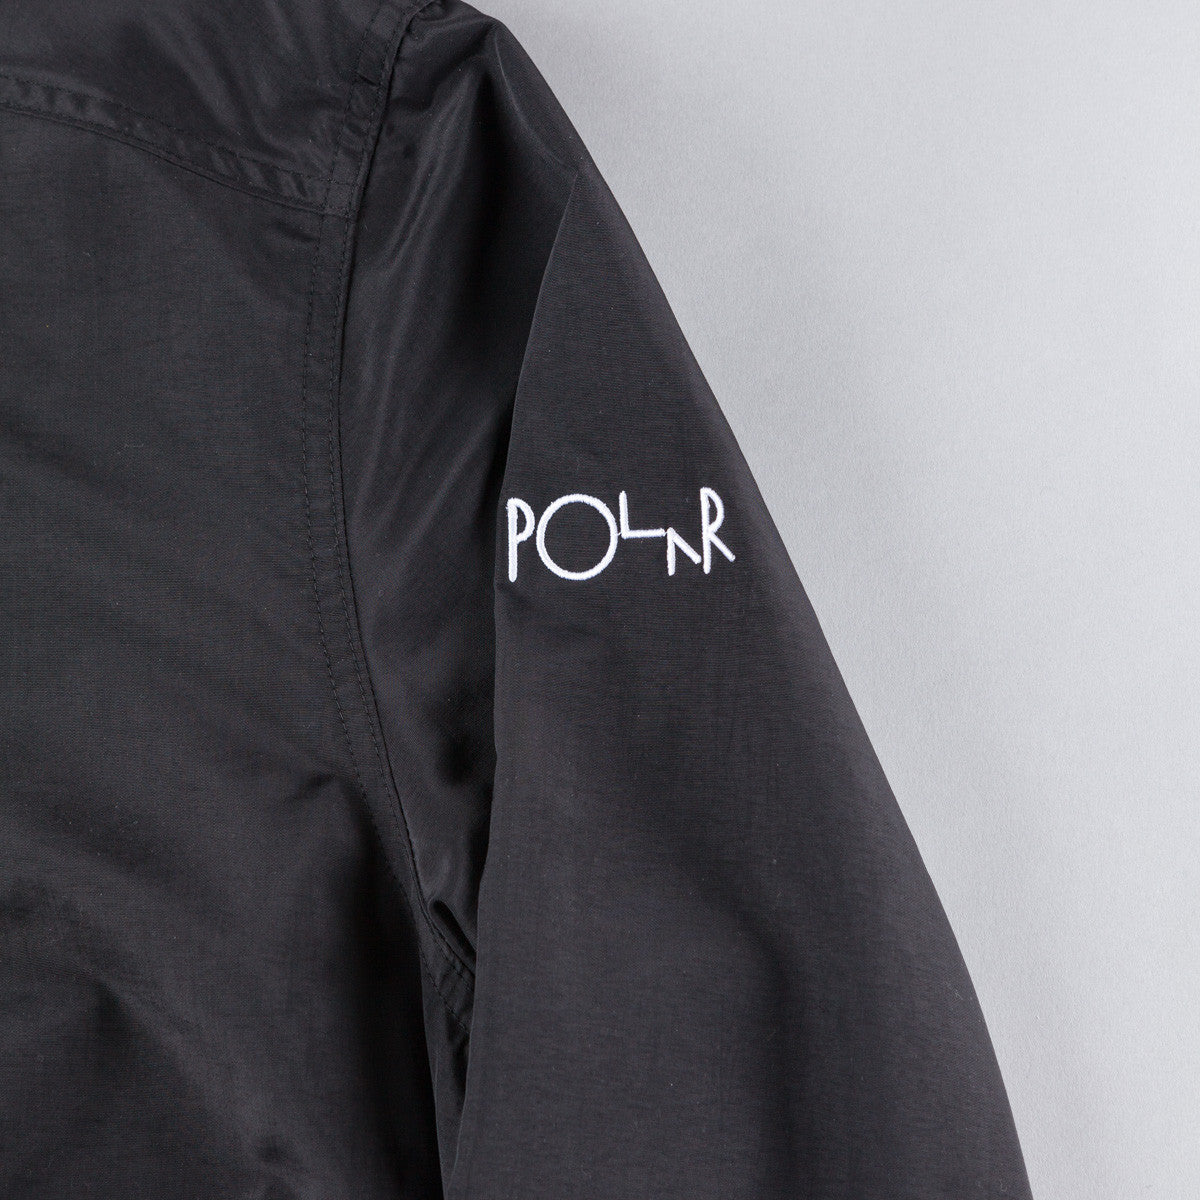 Polar Golf Club Pullover Jacket - Black